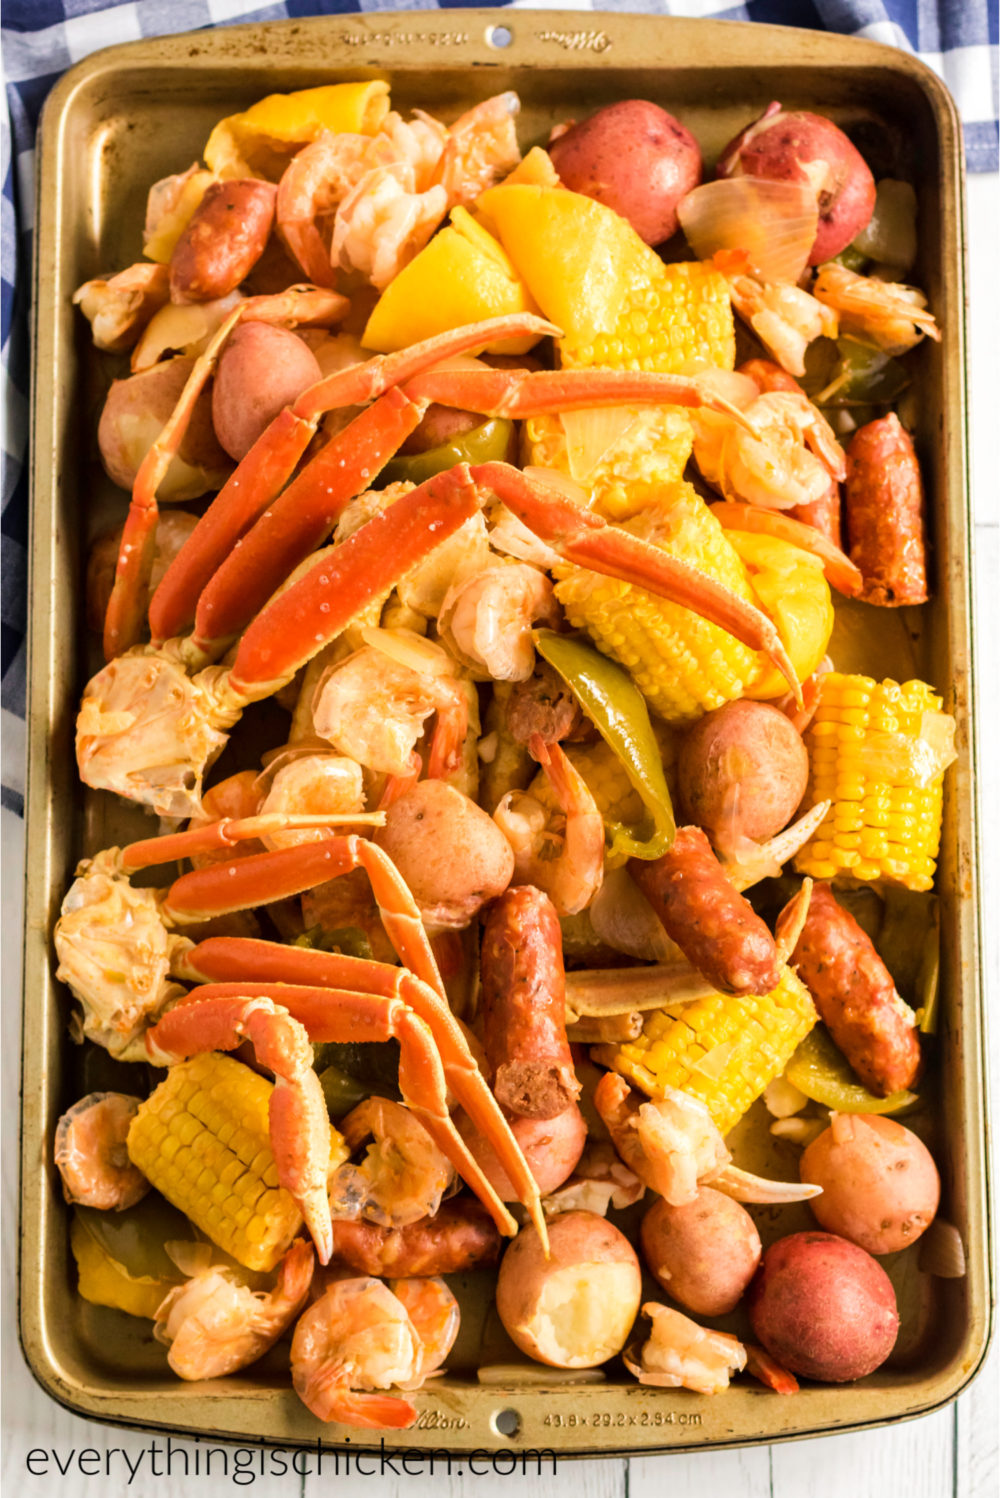 Fully seafood boil finished and served on a baking sheet and ready to eat.